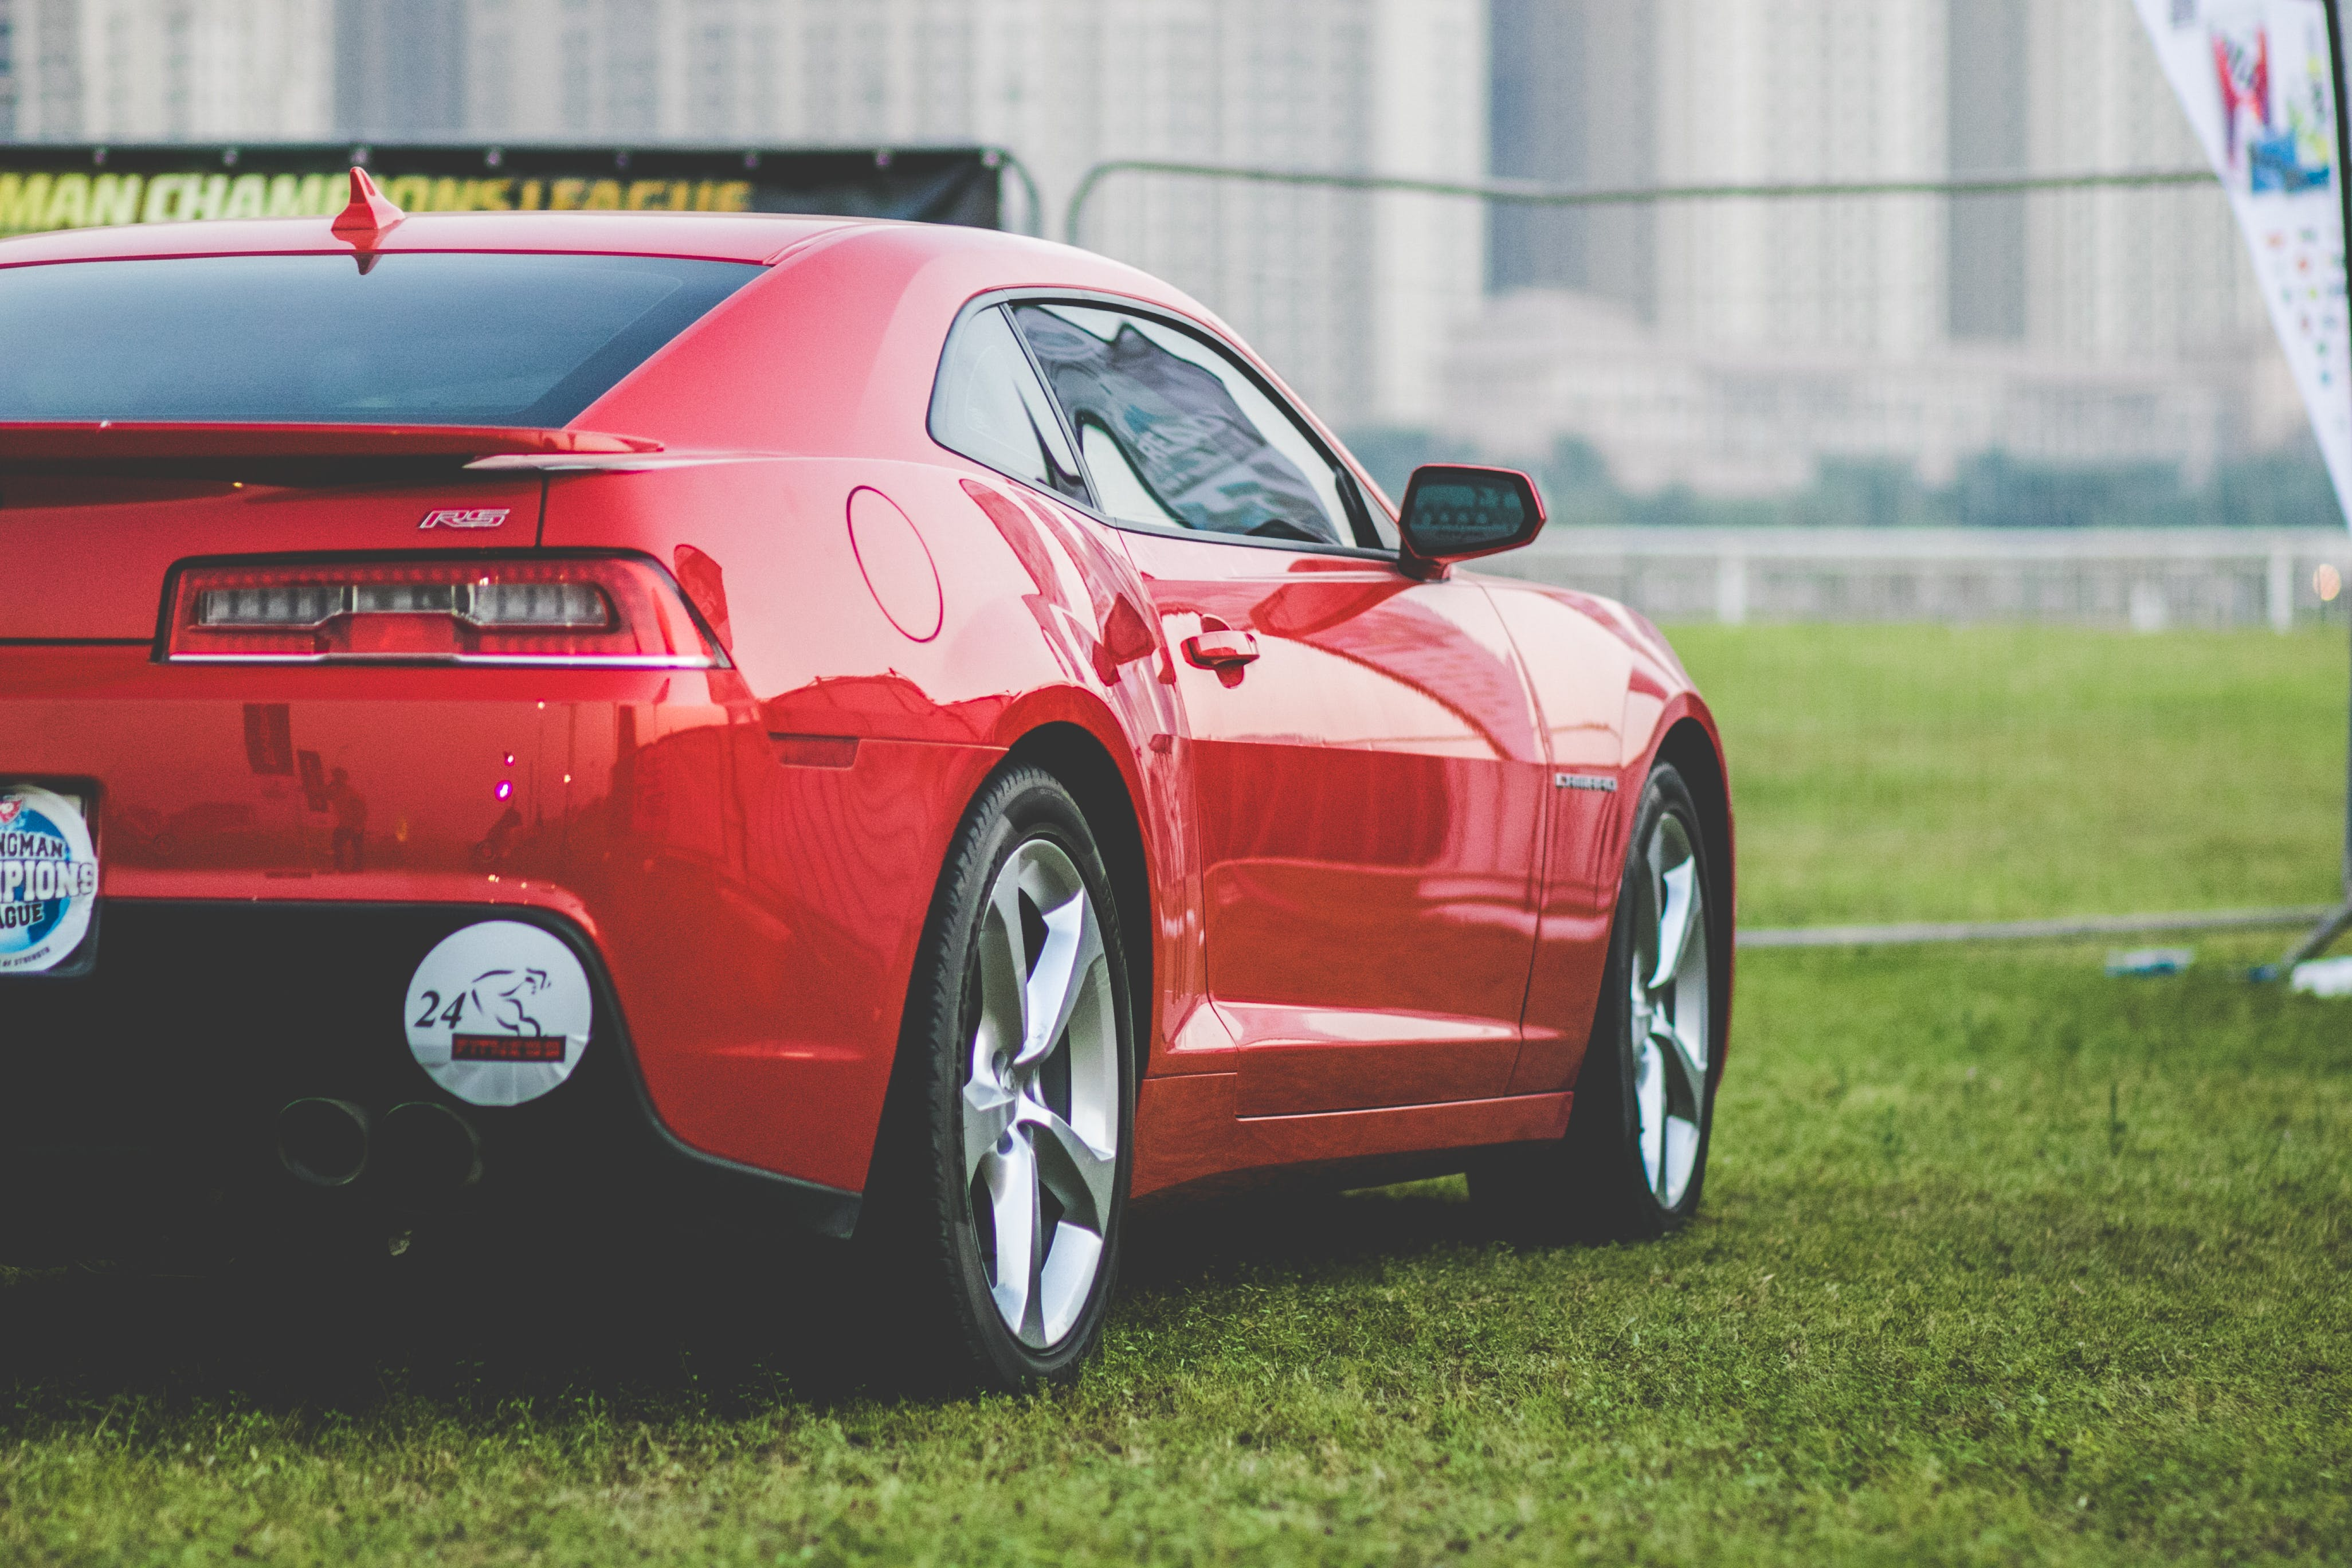 Red Coupe Parked on Green Grasses